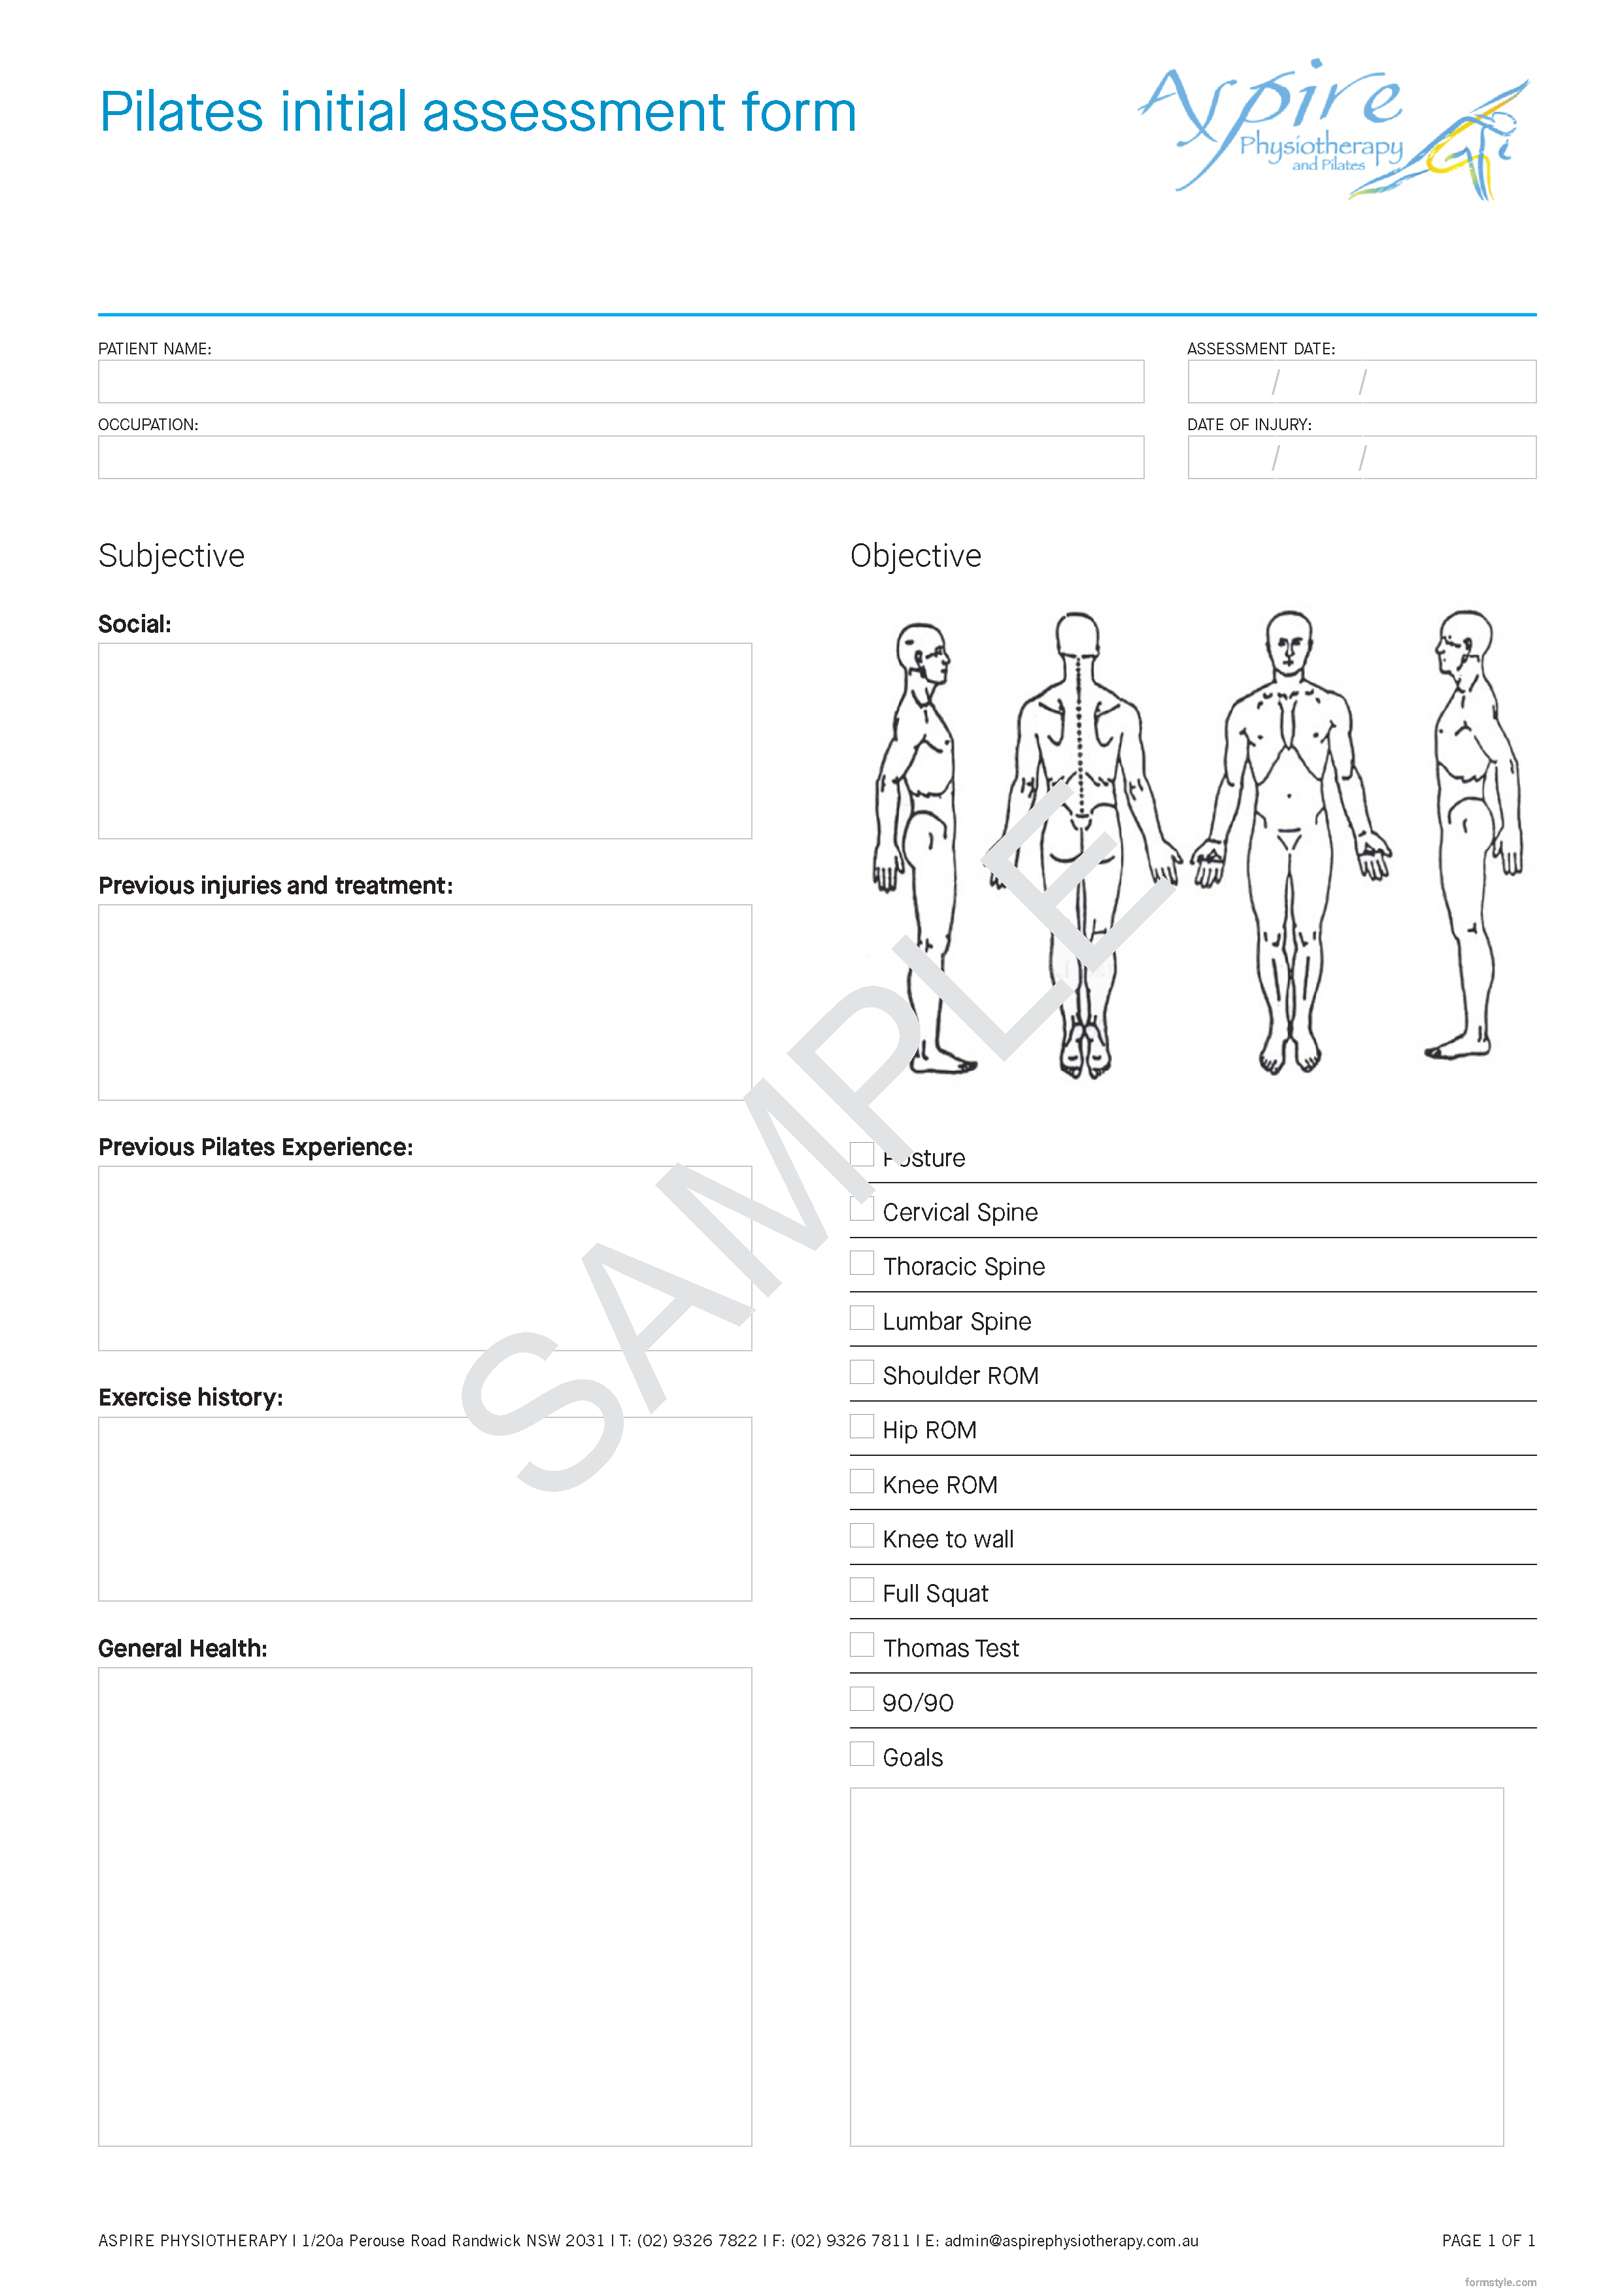 Example of printed form design